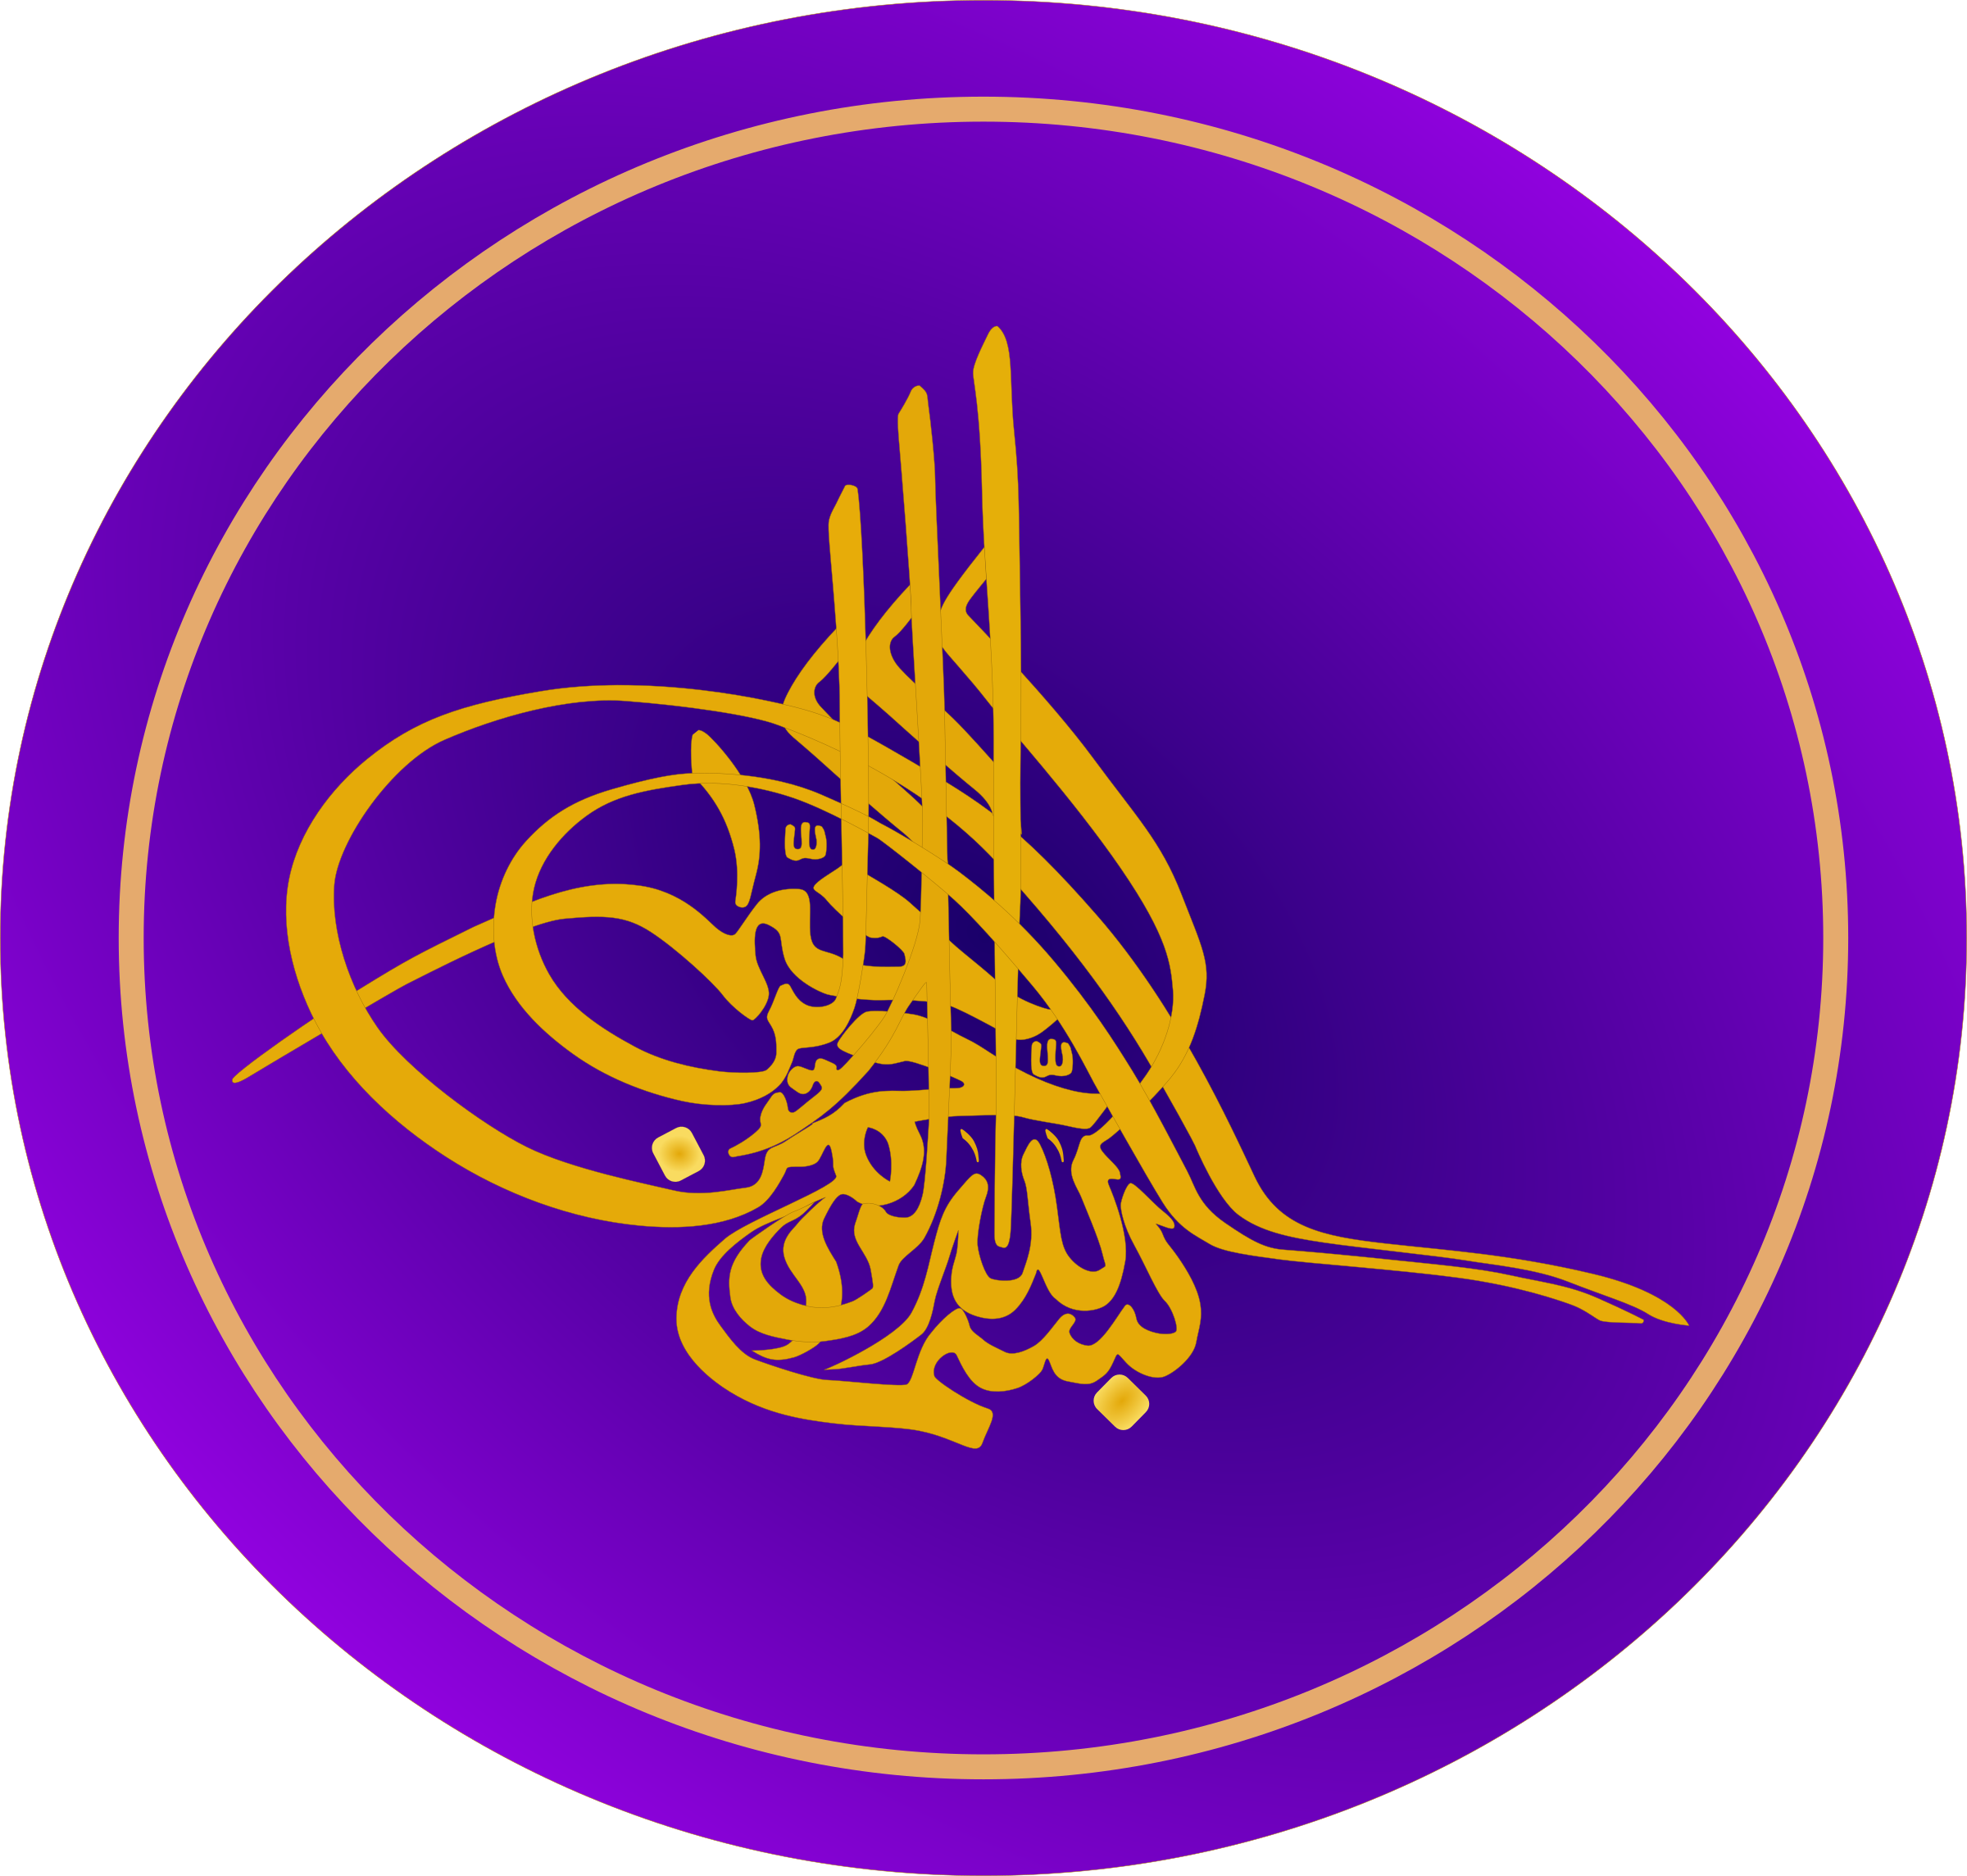 Clipart arabic letters clipart library Clipart - arabic decorative letter clipart library